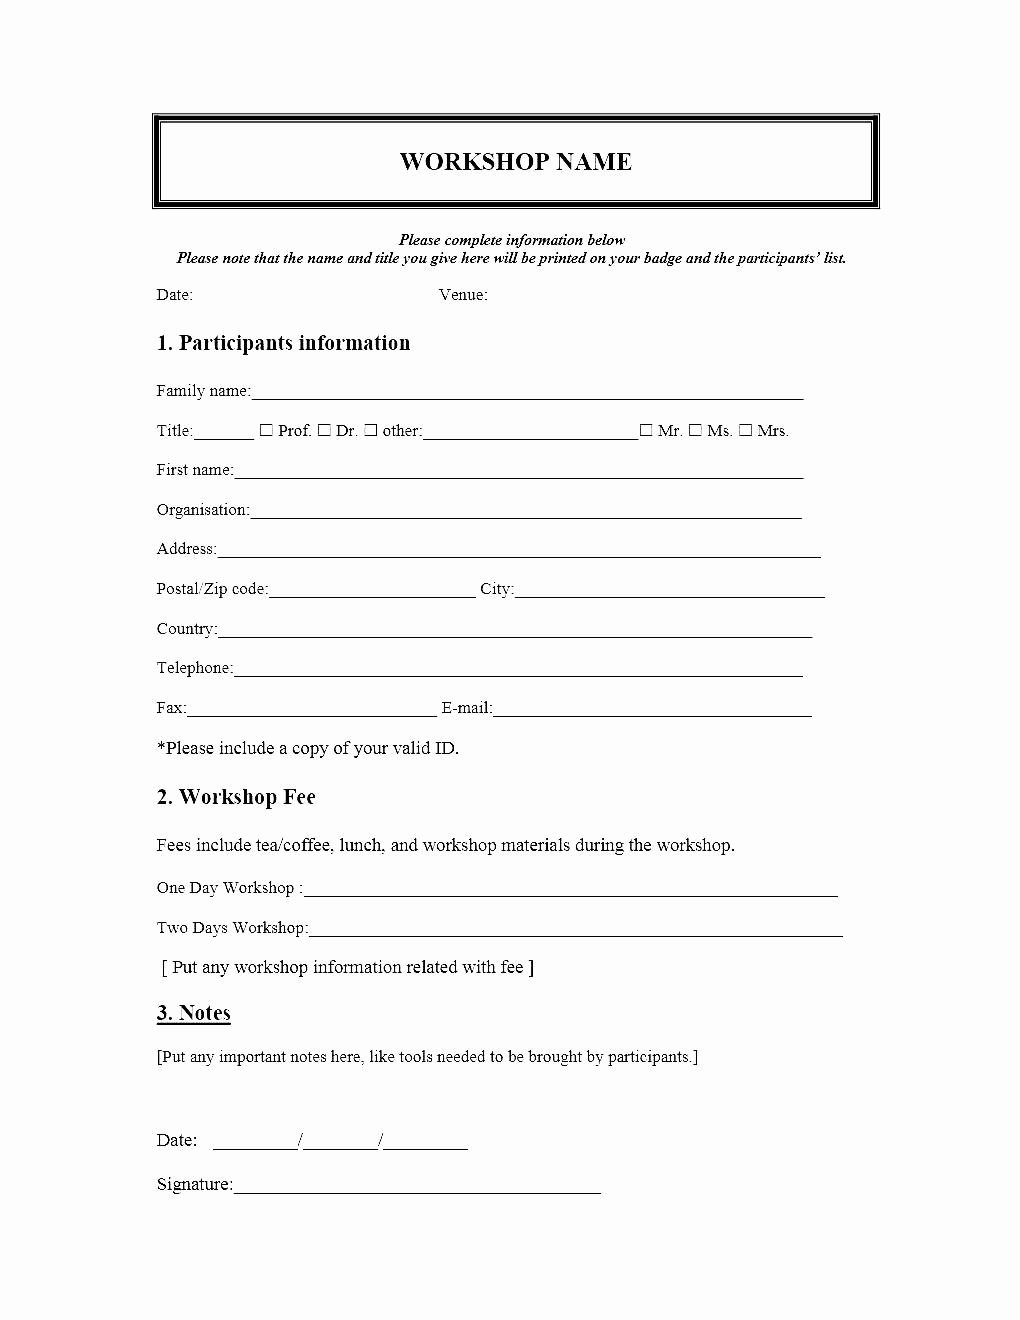 Application form Template Word Best Of event Registration form Template Microsoft Word